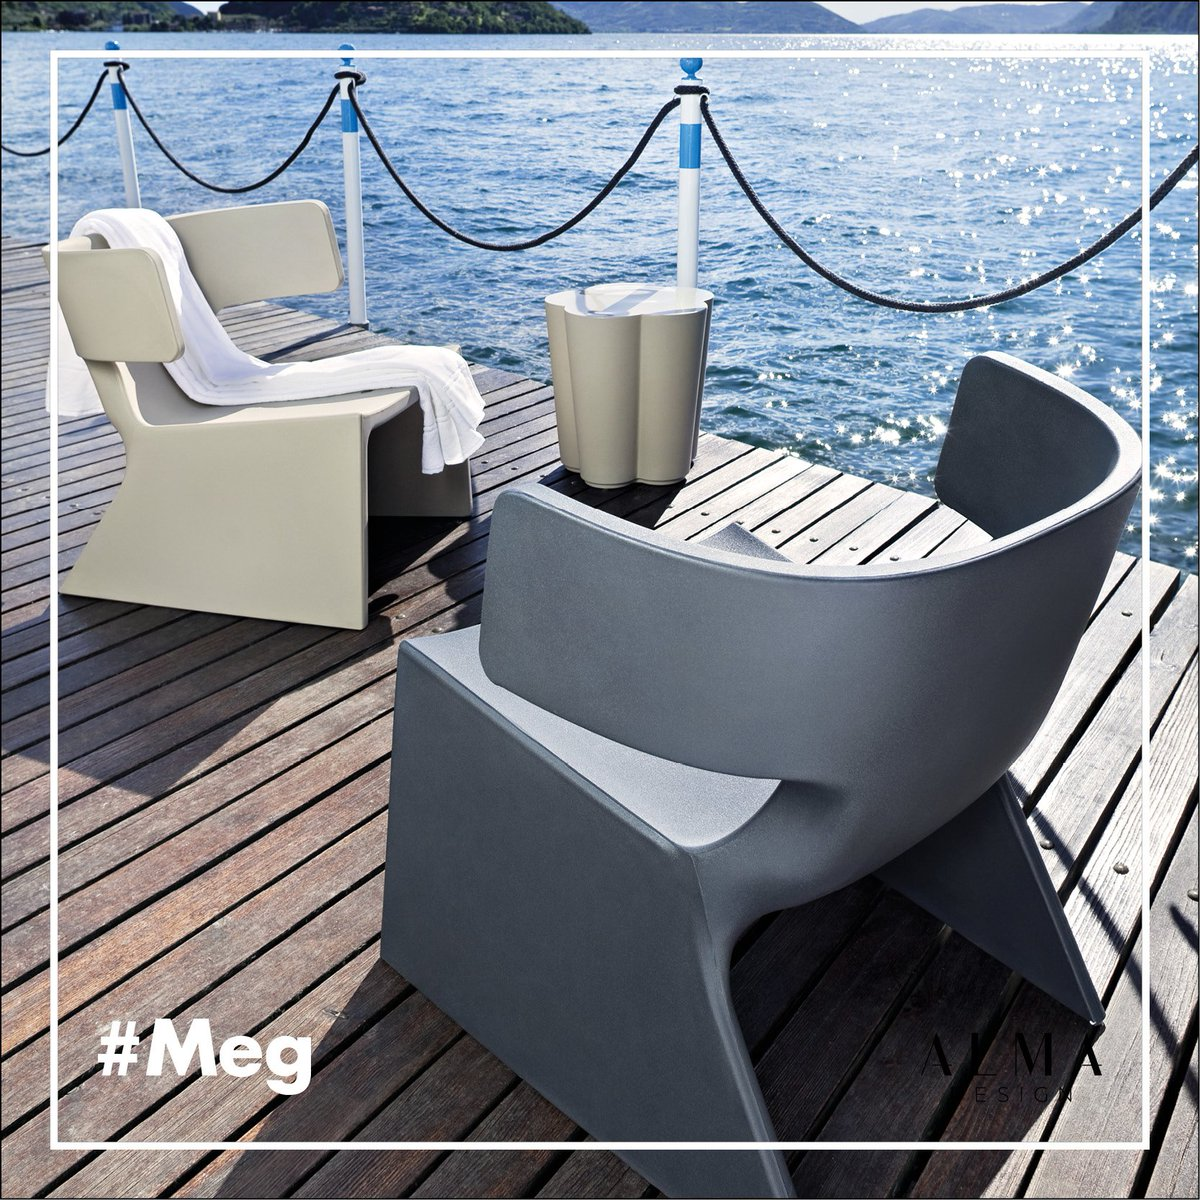 Alma Design On Twitter The Sleek And Cozy Meg S Shape Is Available In The Polyethylene Version Ideal For Decorating Terraces And Gardens Chairs Sedie Almadesign Livingroom Home Design Designlovers Interiordesign